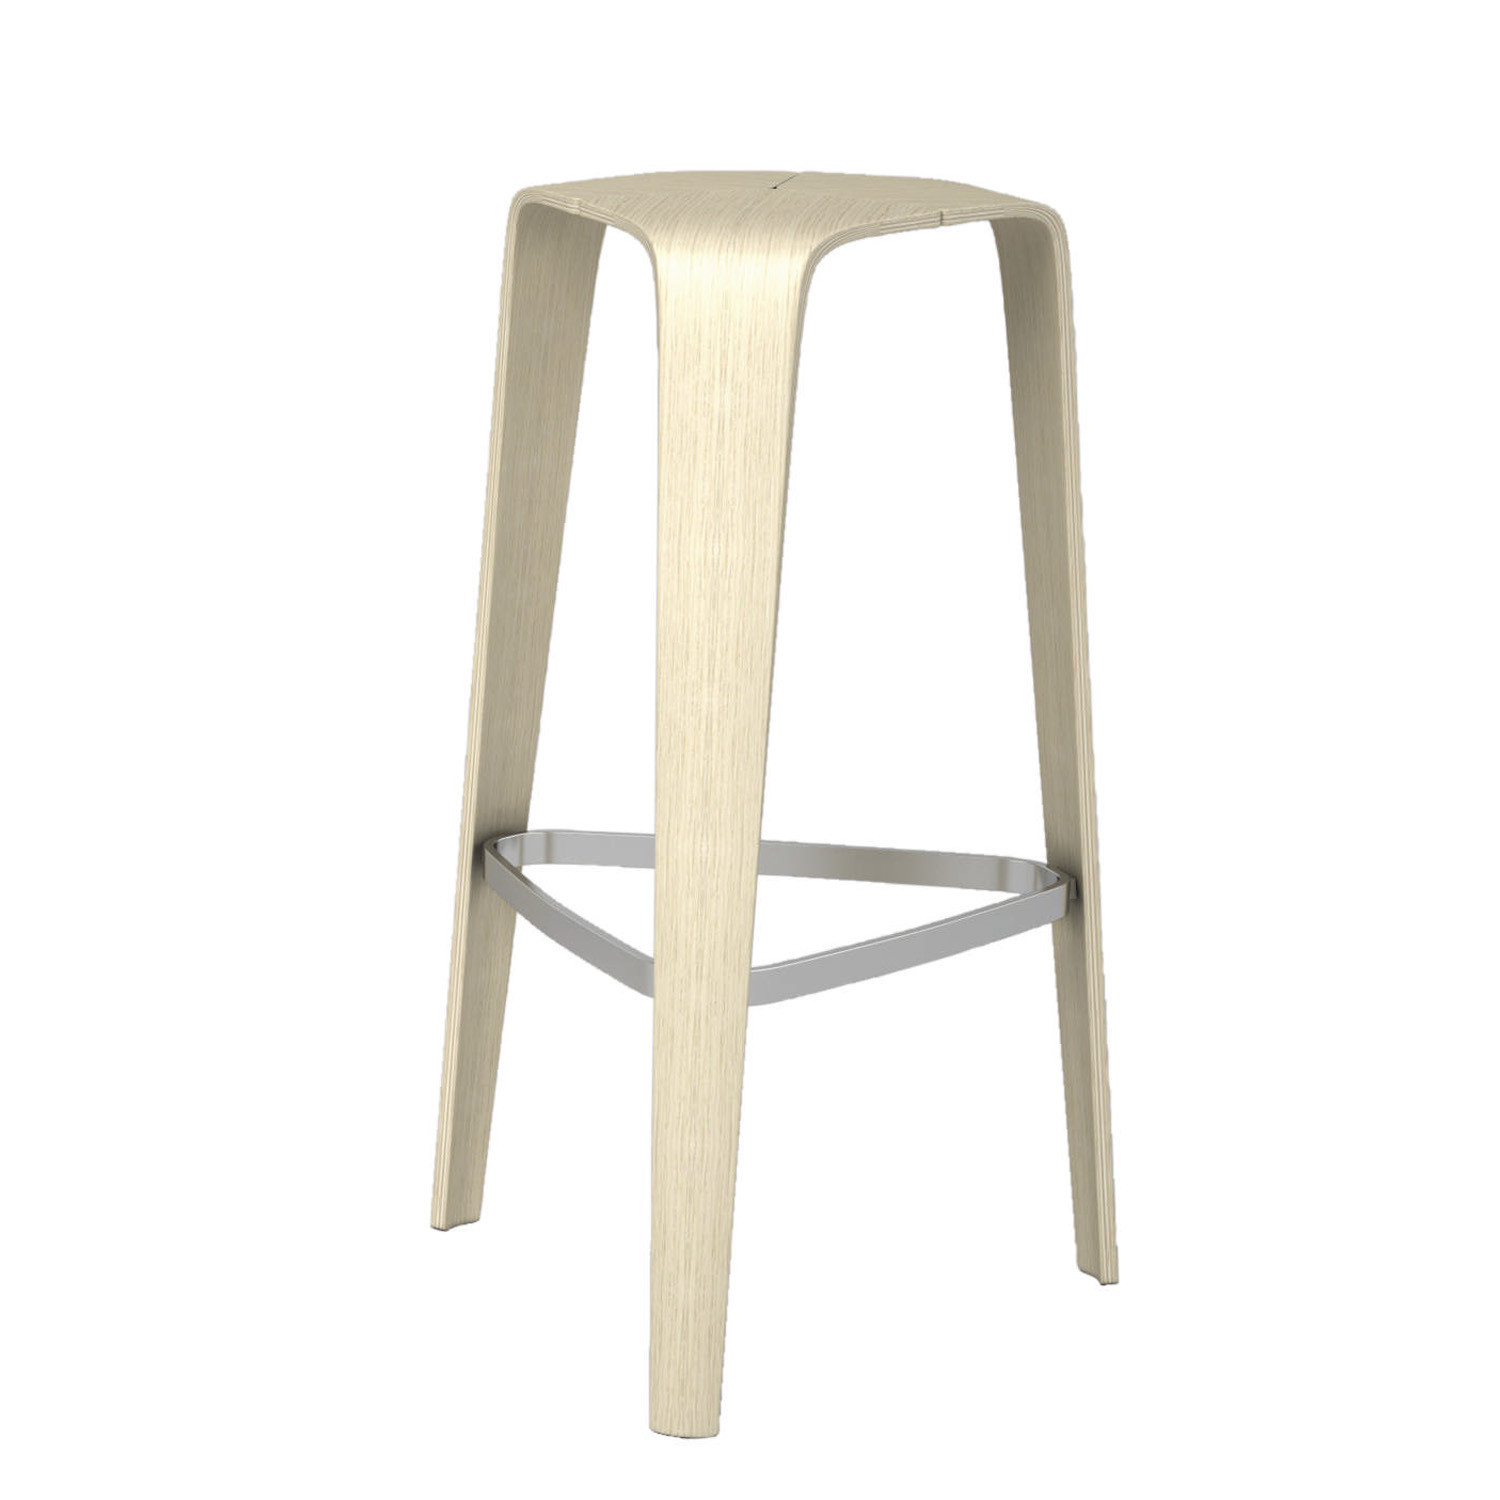 Hoc Bar Stool available in molded beech or oak wood